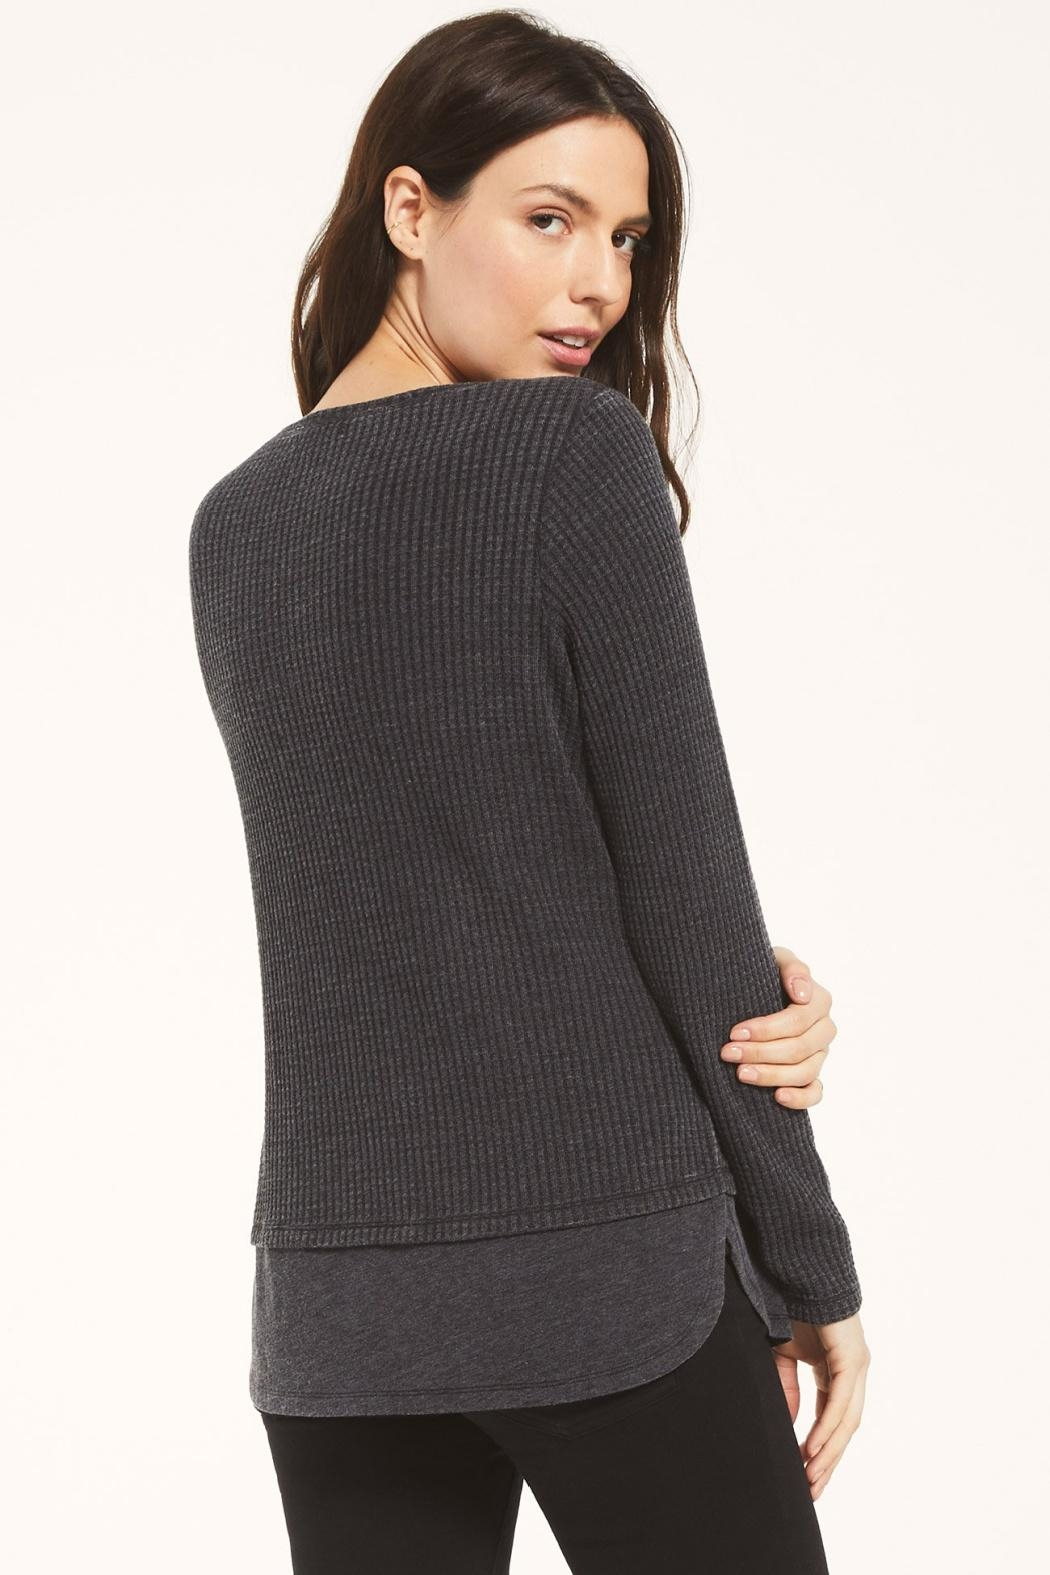 z supply Raine Thermal Tunic - Side Cropped Image